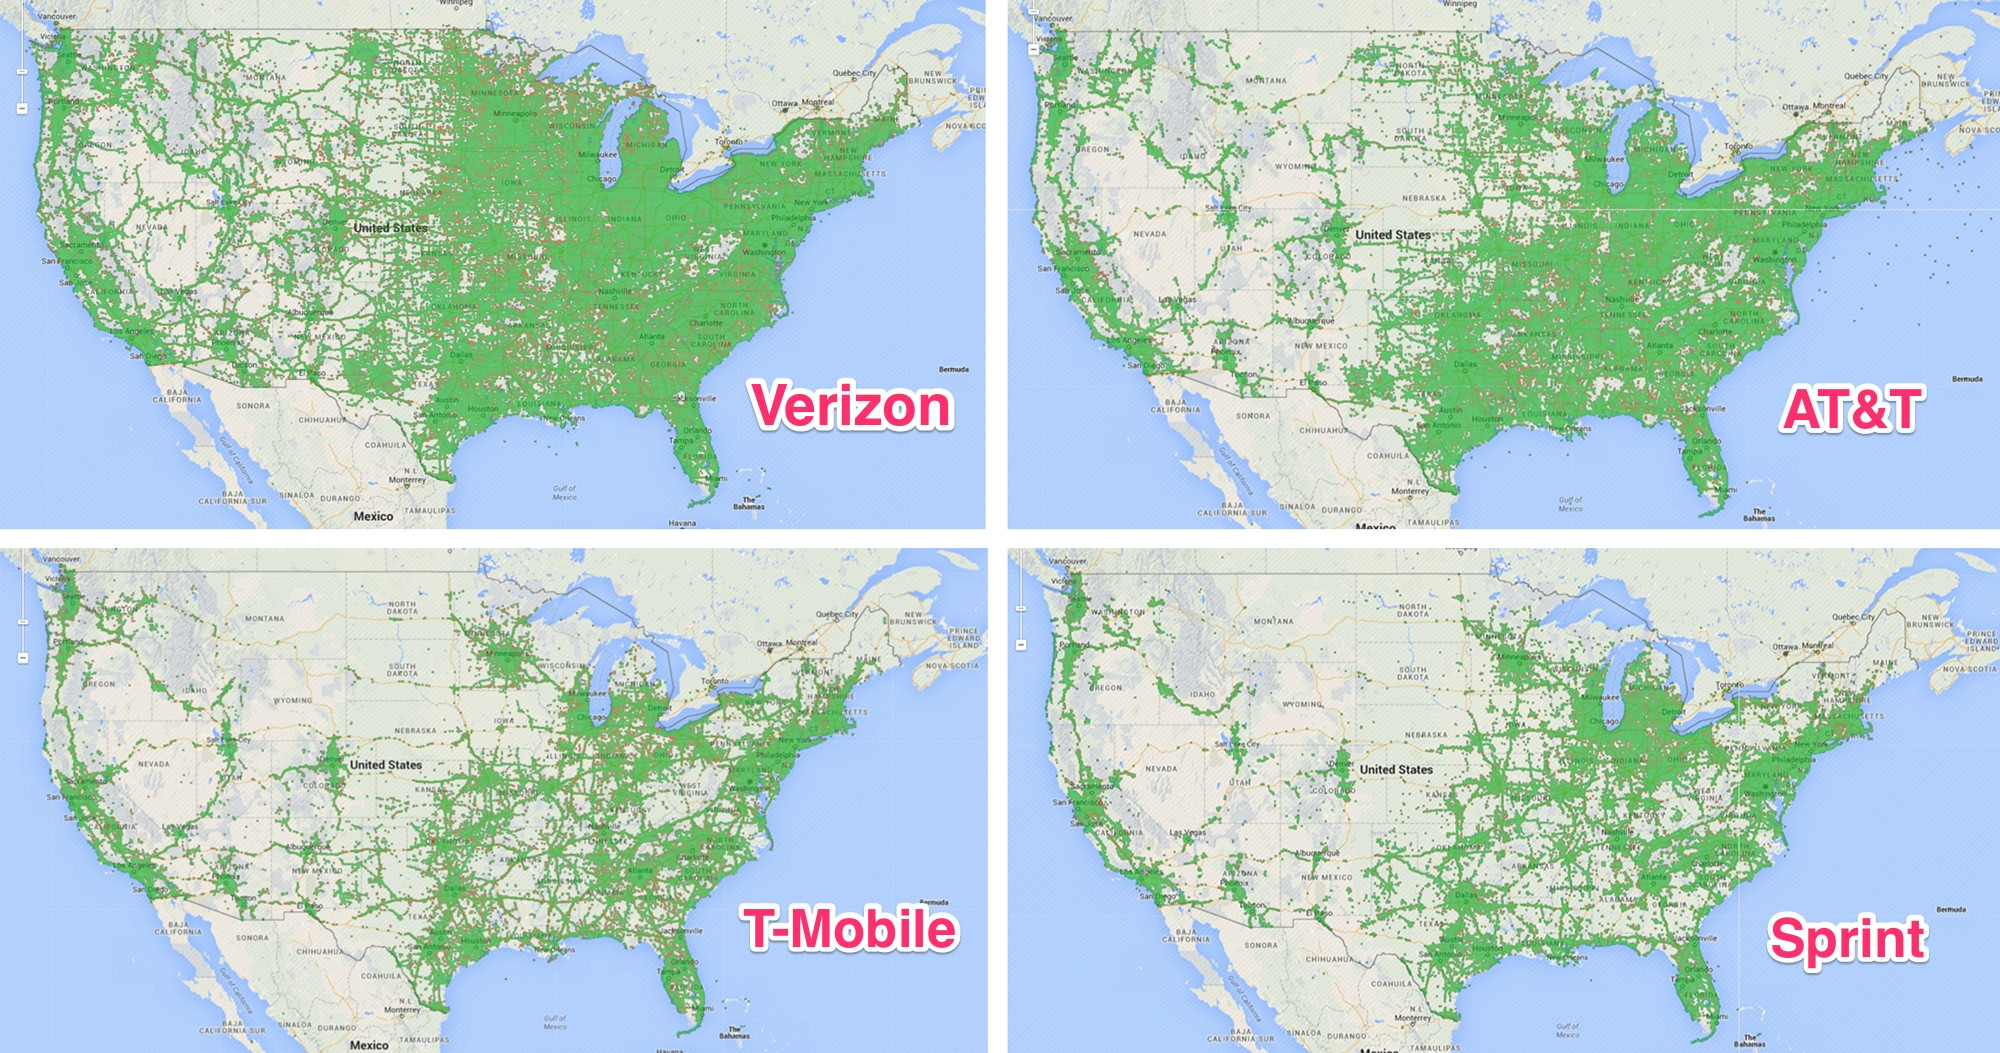 Verizon Coverage Map California Valid Us Cellular Cell Phone - Verizon Lte Coverage Map California